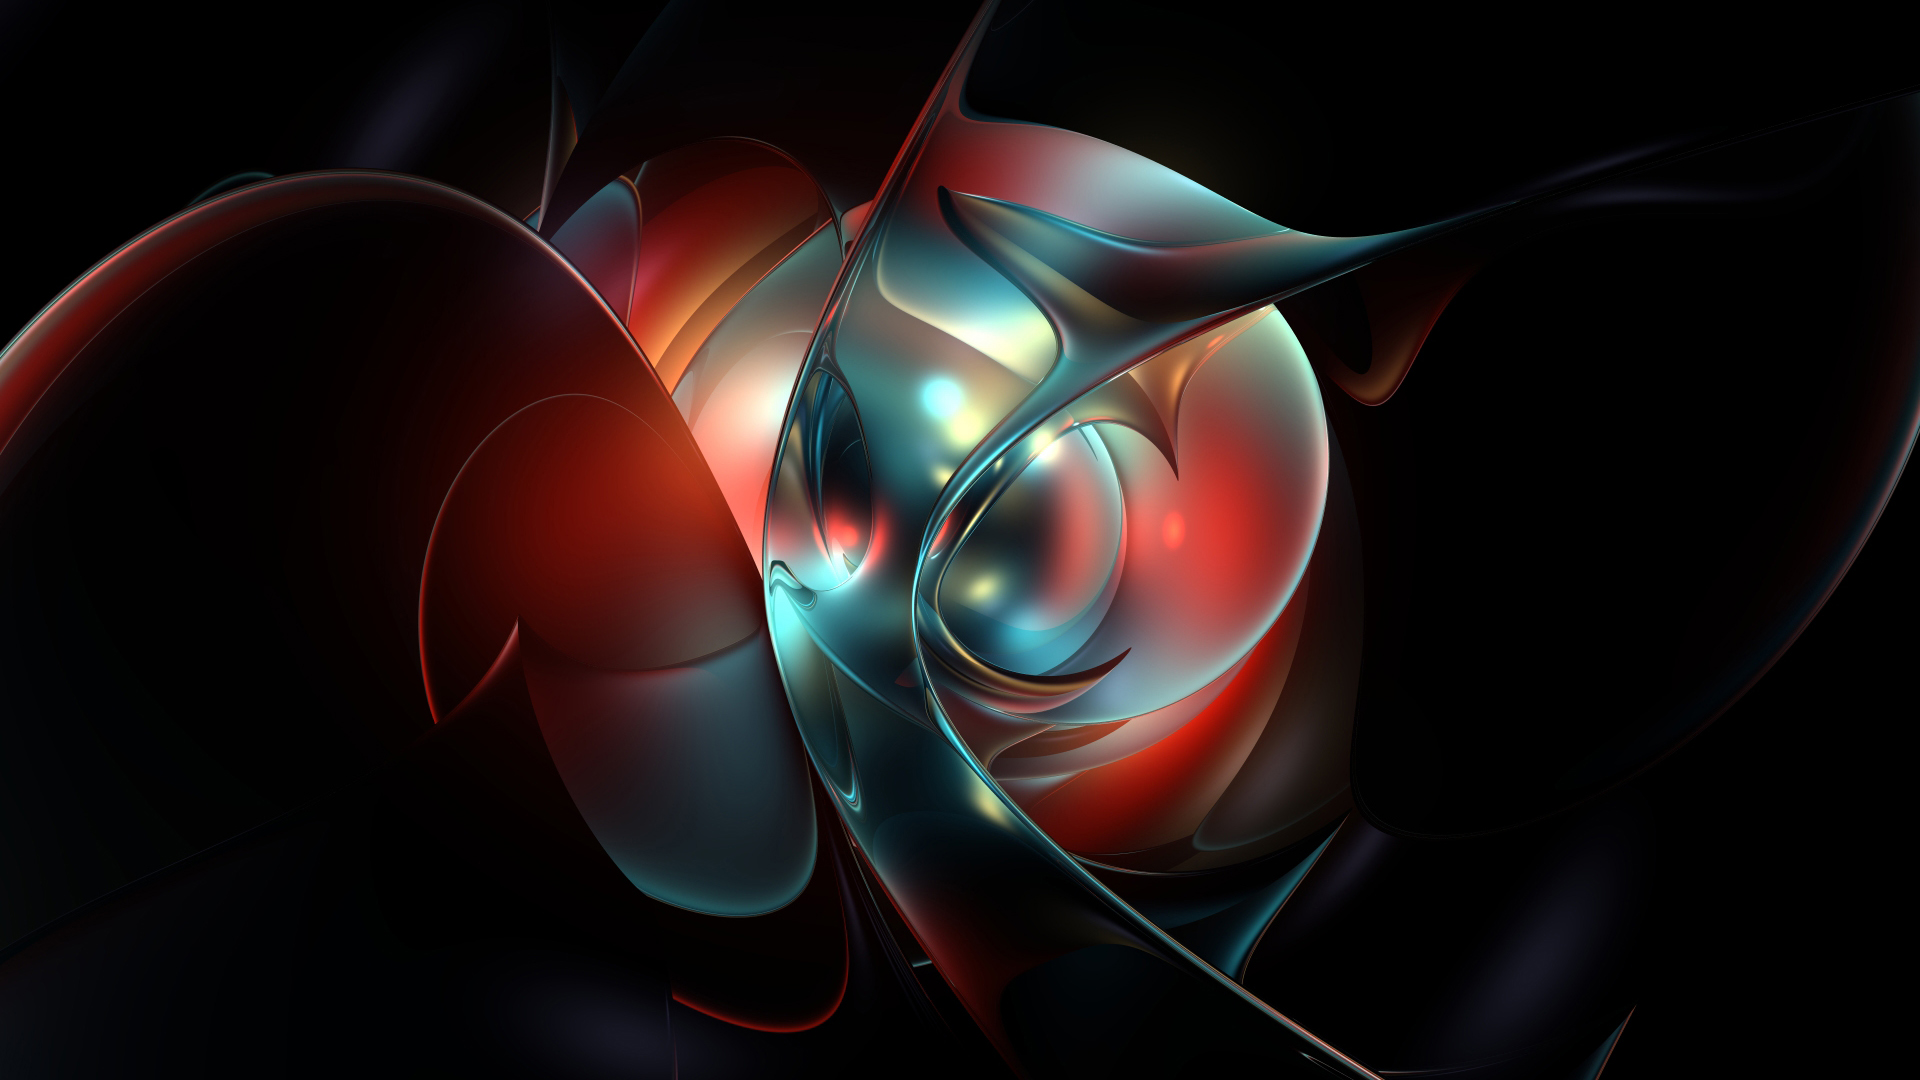 3D Abstract Wallpapers HD Wallpapers 1920x1080